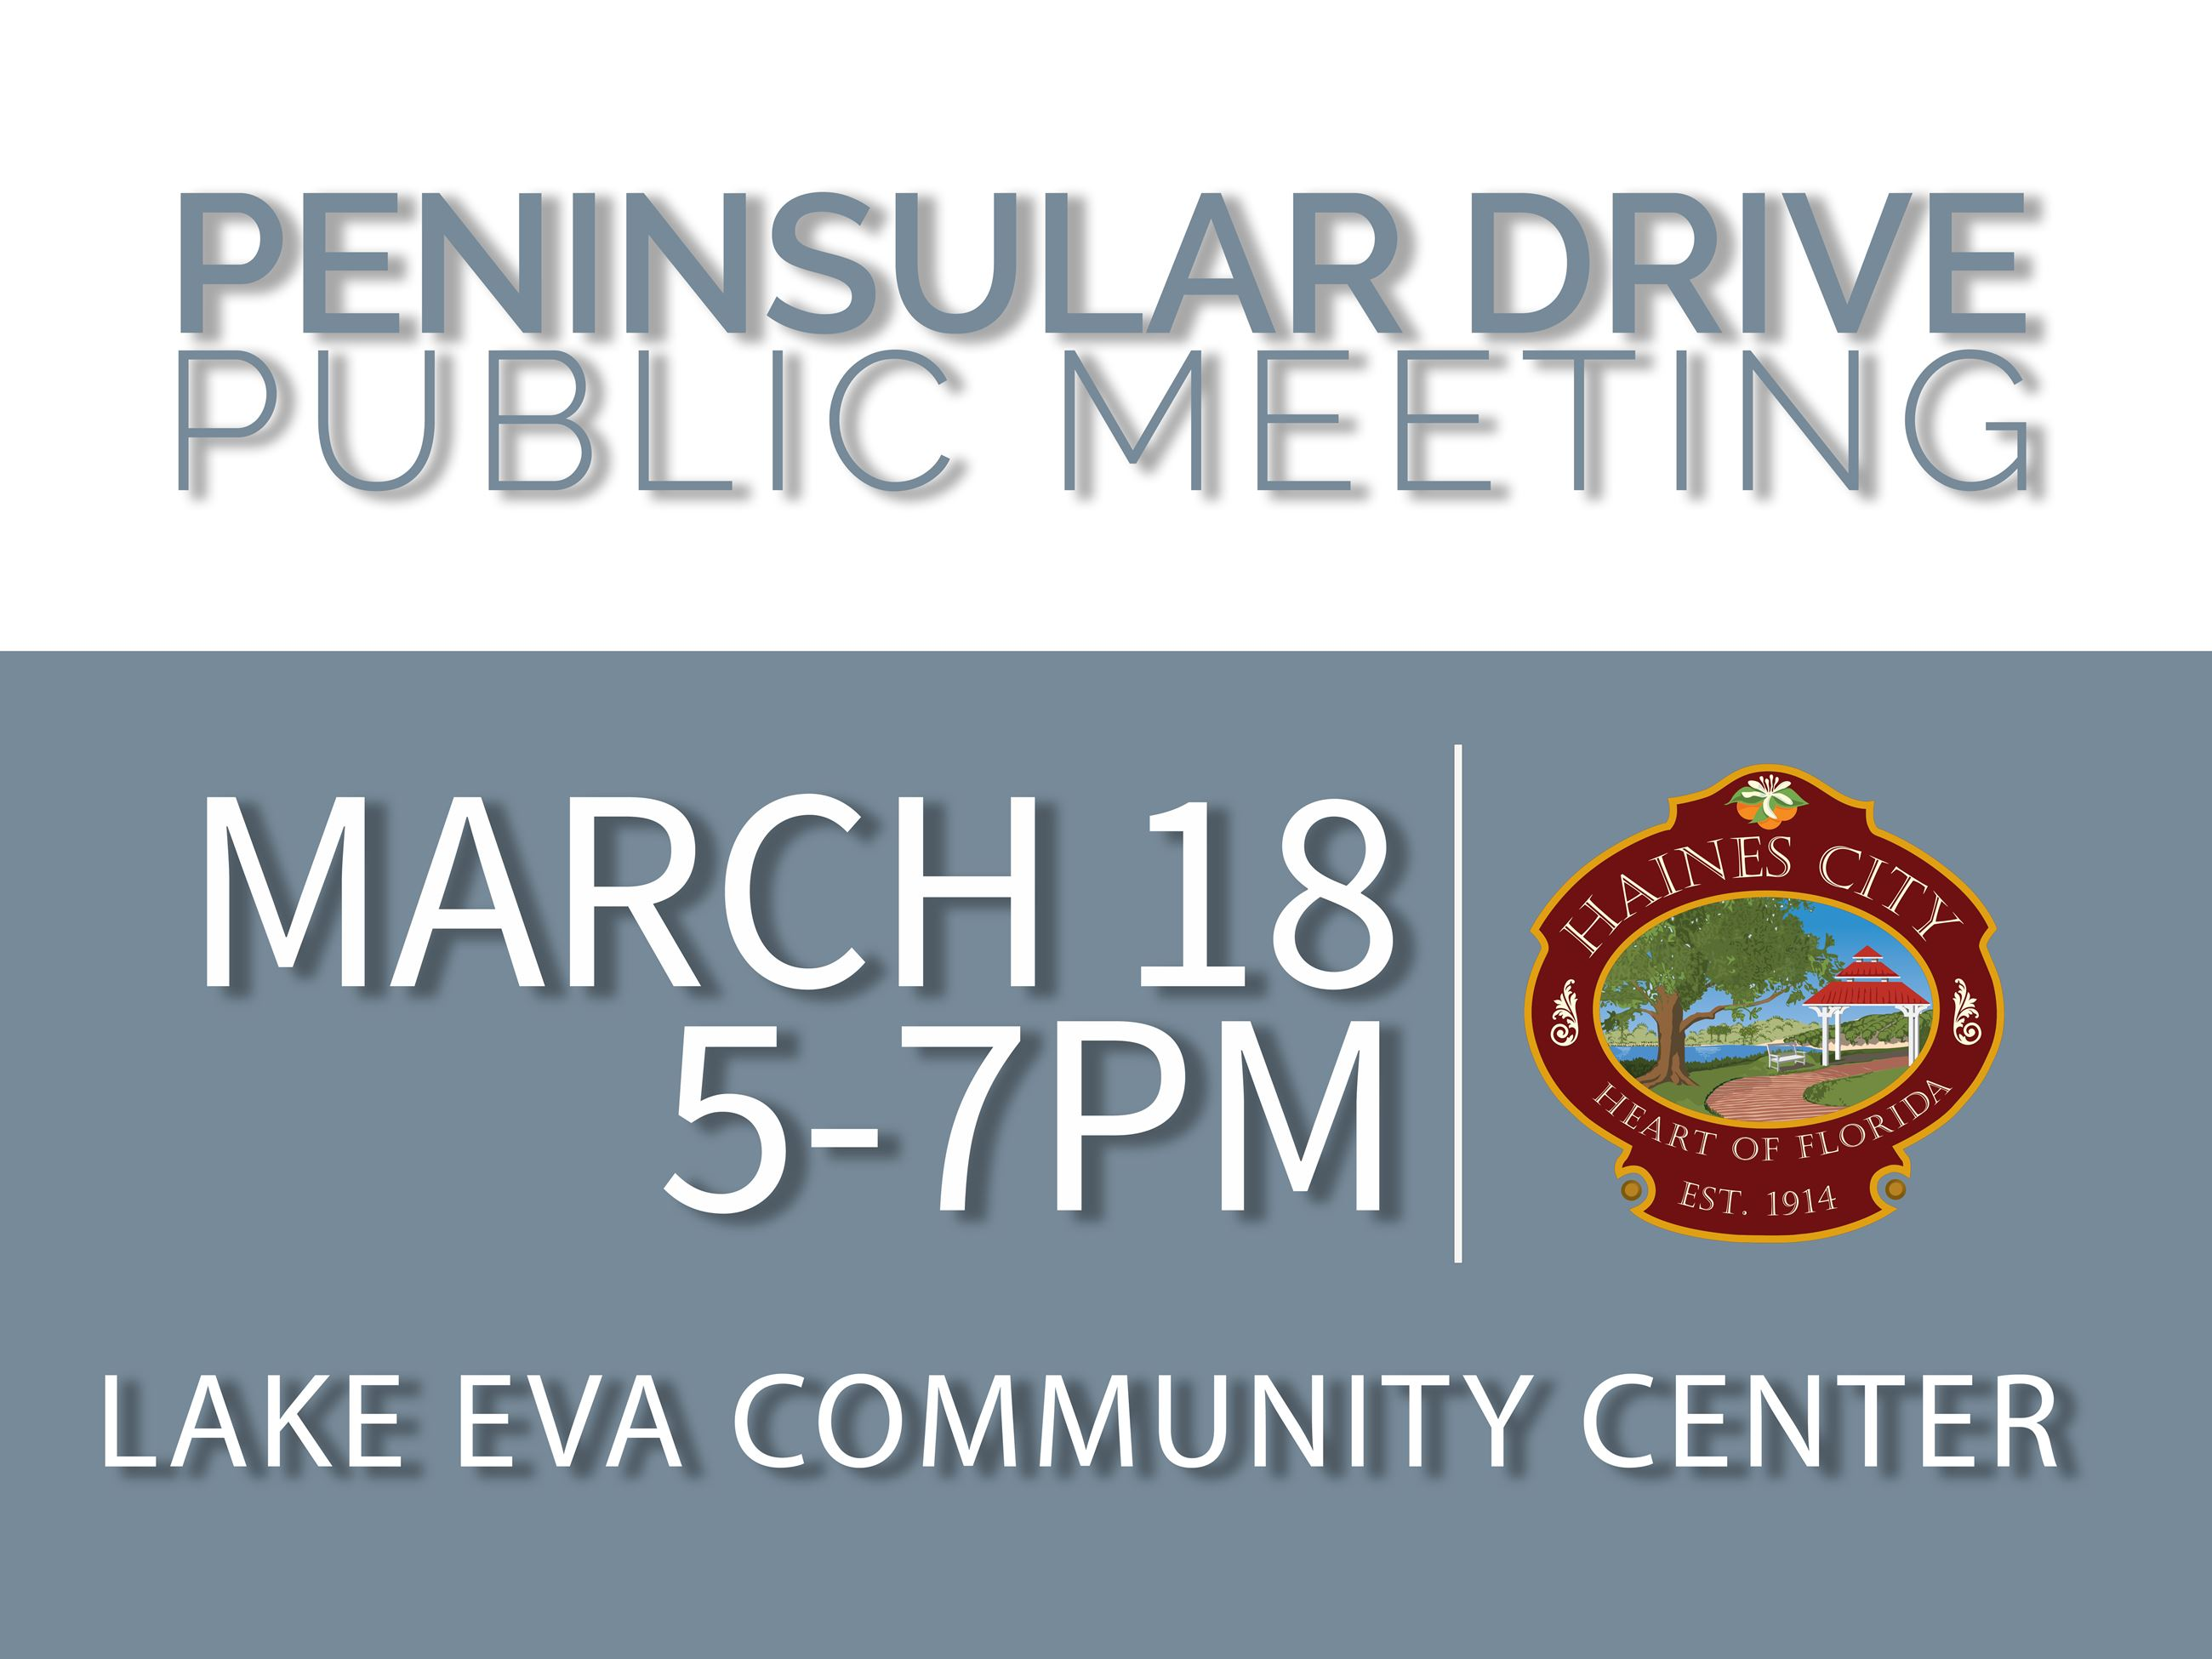 Flyer: Peninsular Drive Public Meeting March 18 from 5-7PM at Lake Eva Community Center